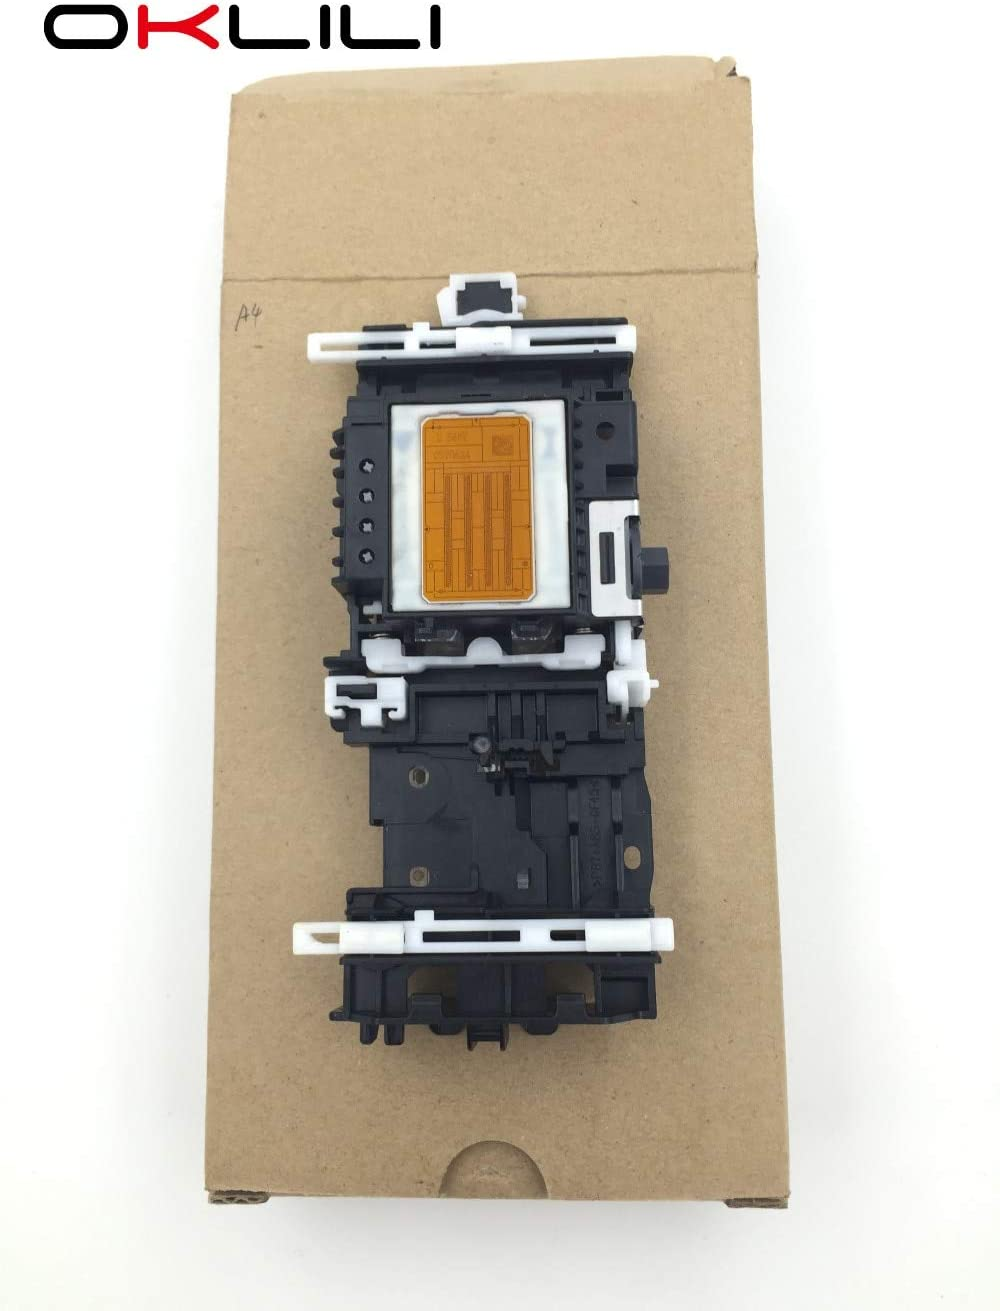 Original Lk3211001 990 A4 Printhead Print Head for Brother 395C 250C 255C 290C 295C 490C 495C 790C 795C J410 J125 J220 145C 165C Printer Spare Parts